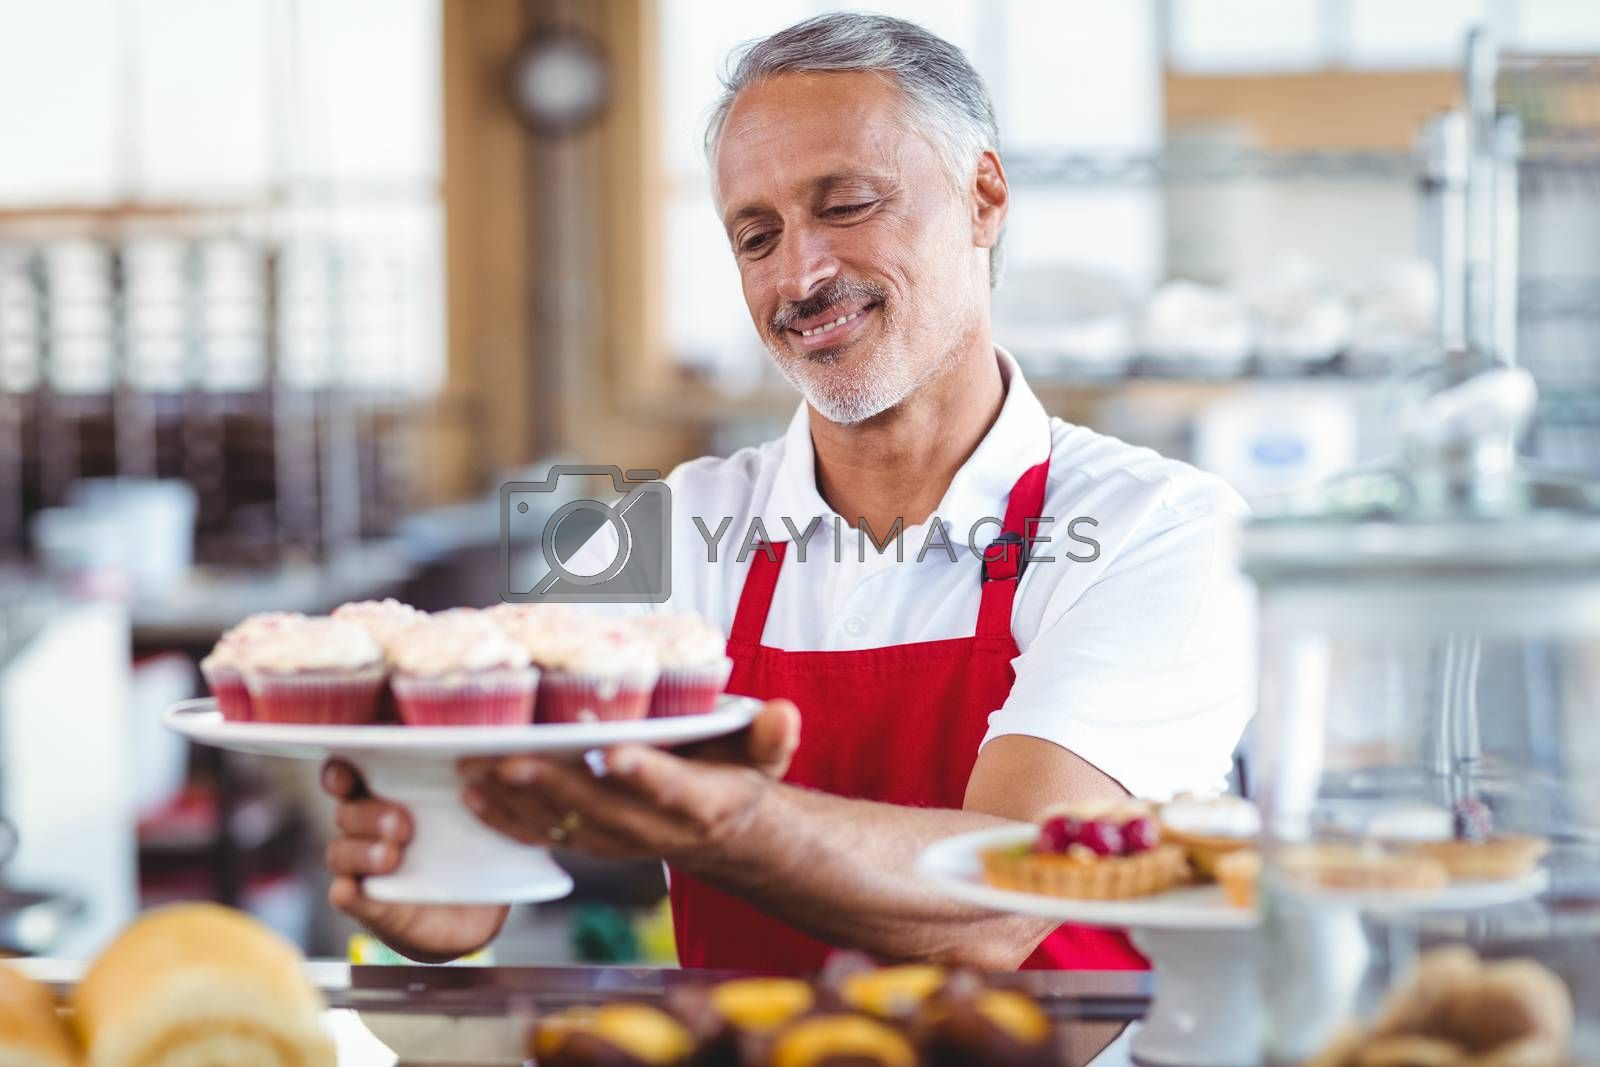 Royalty free image of Happy barista holding a plate of cupcakes by Wavebreakmedia